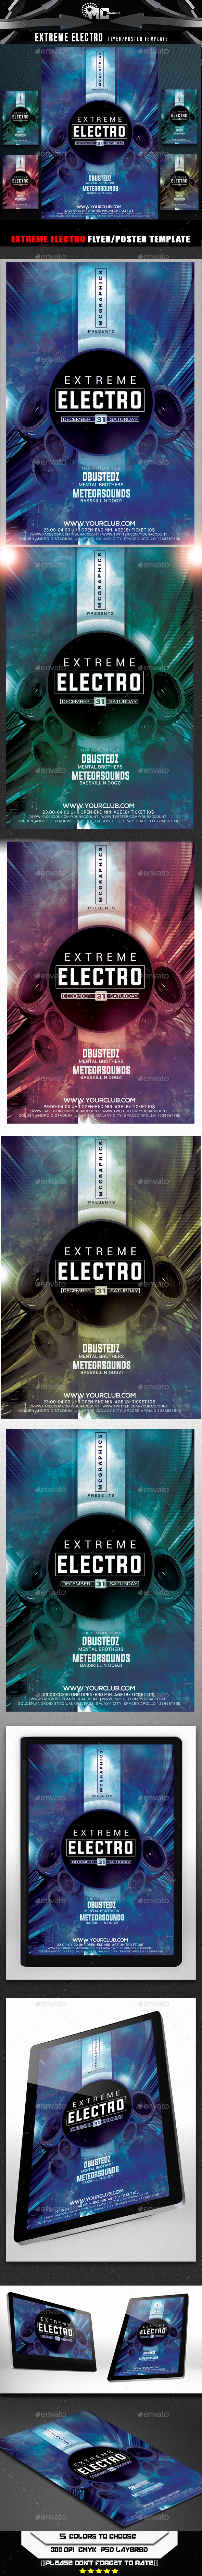 GraphicRiver Extreme Electro Flyer Template 9395842